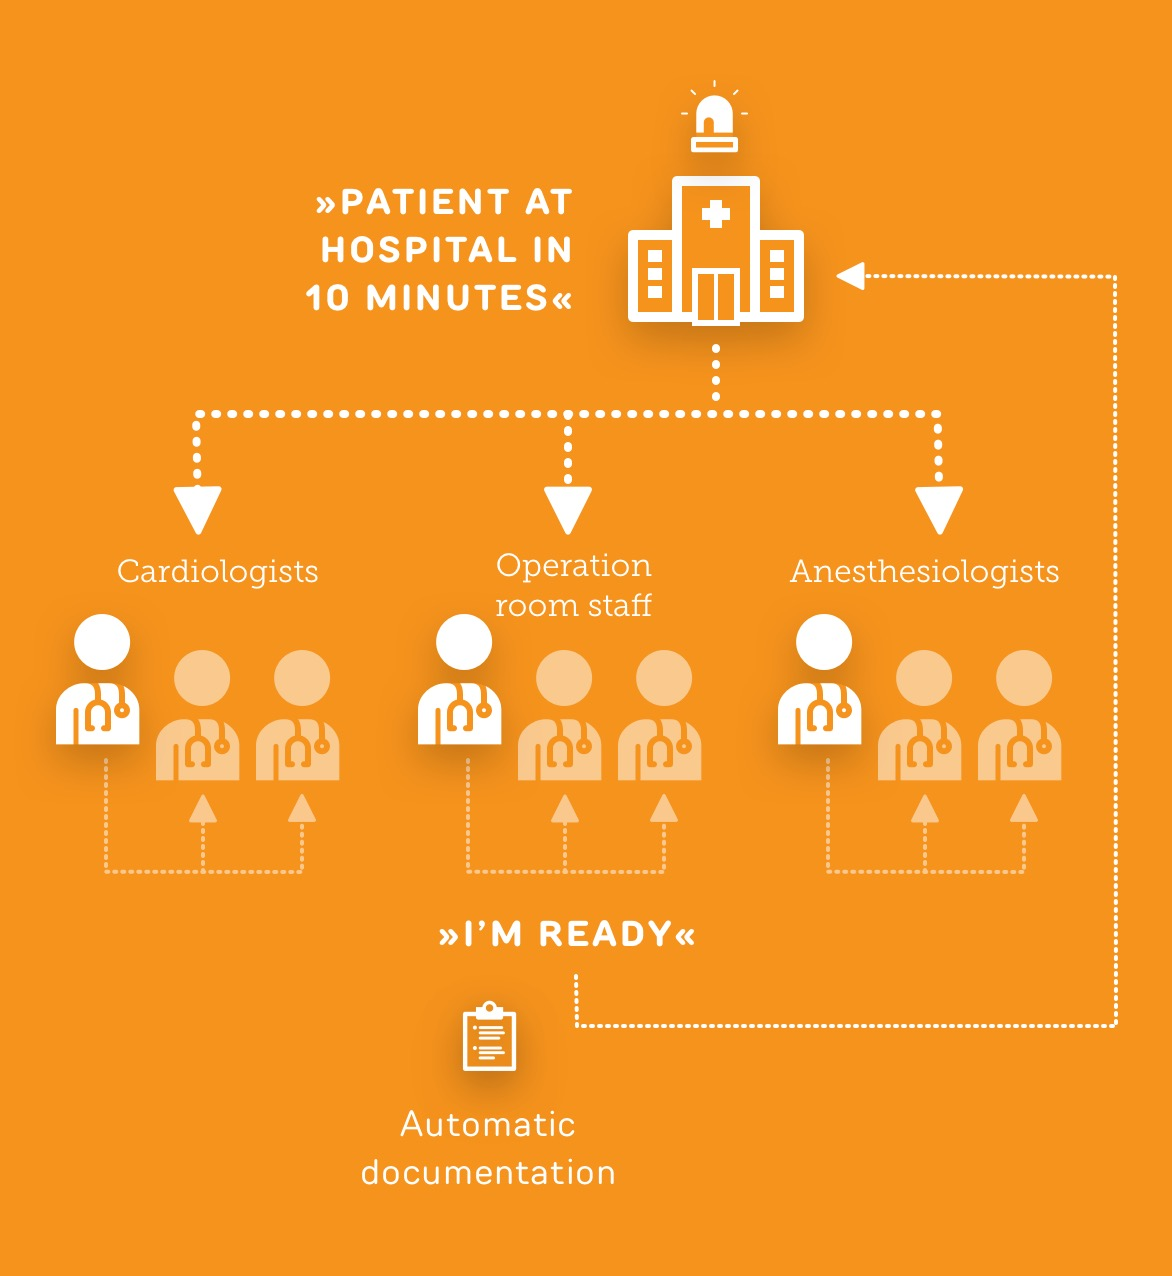 Patient in hospital in 10 minutes - Use case ReAct Healthcare